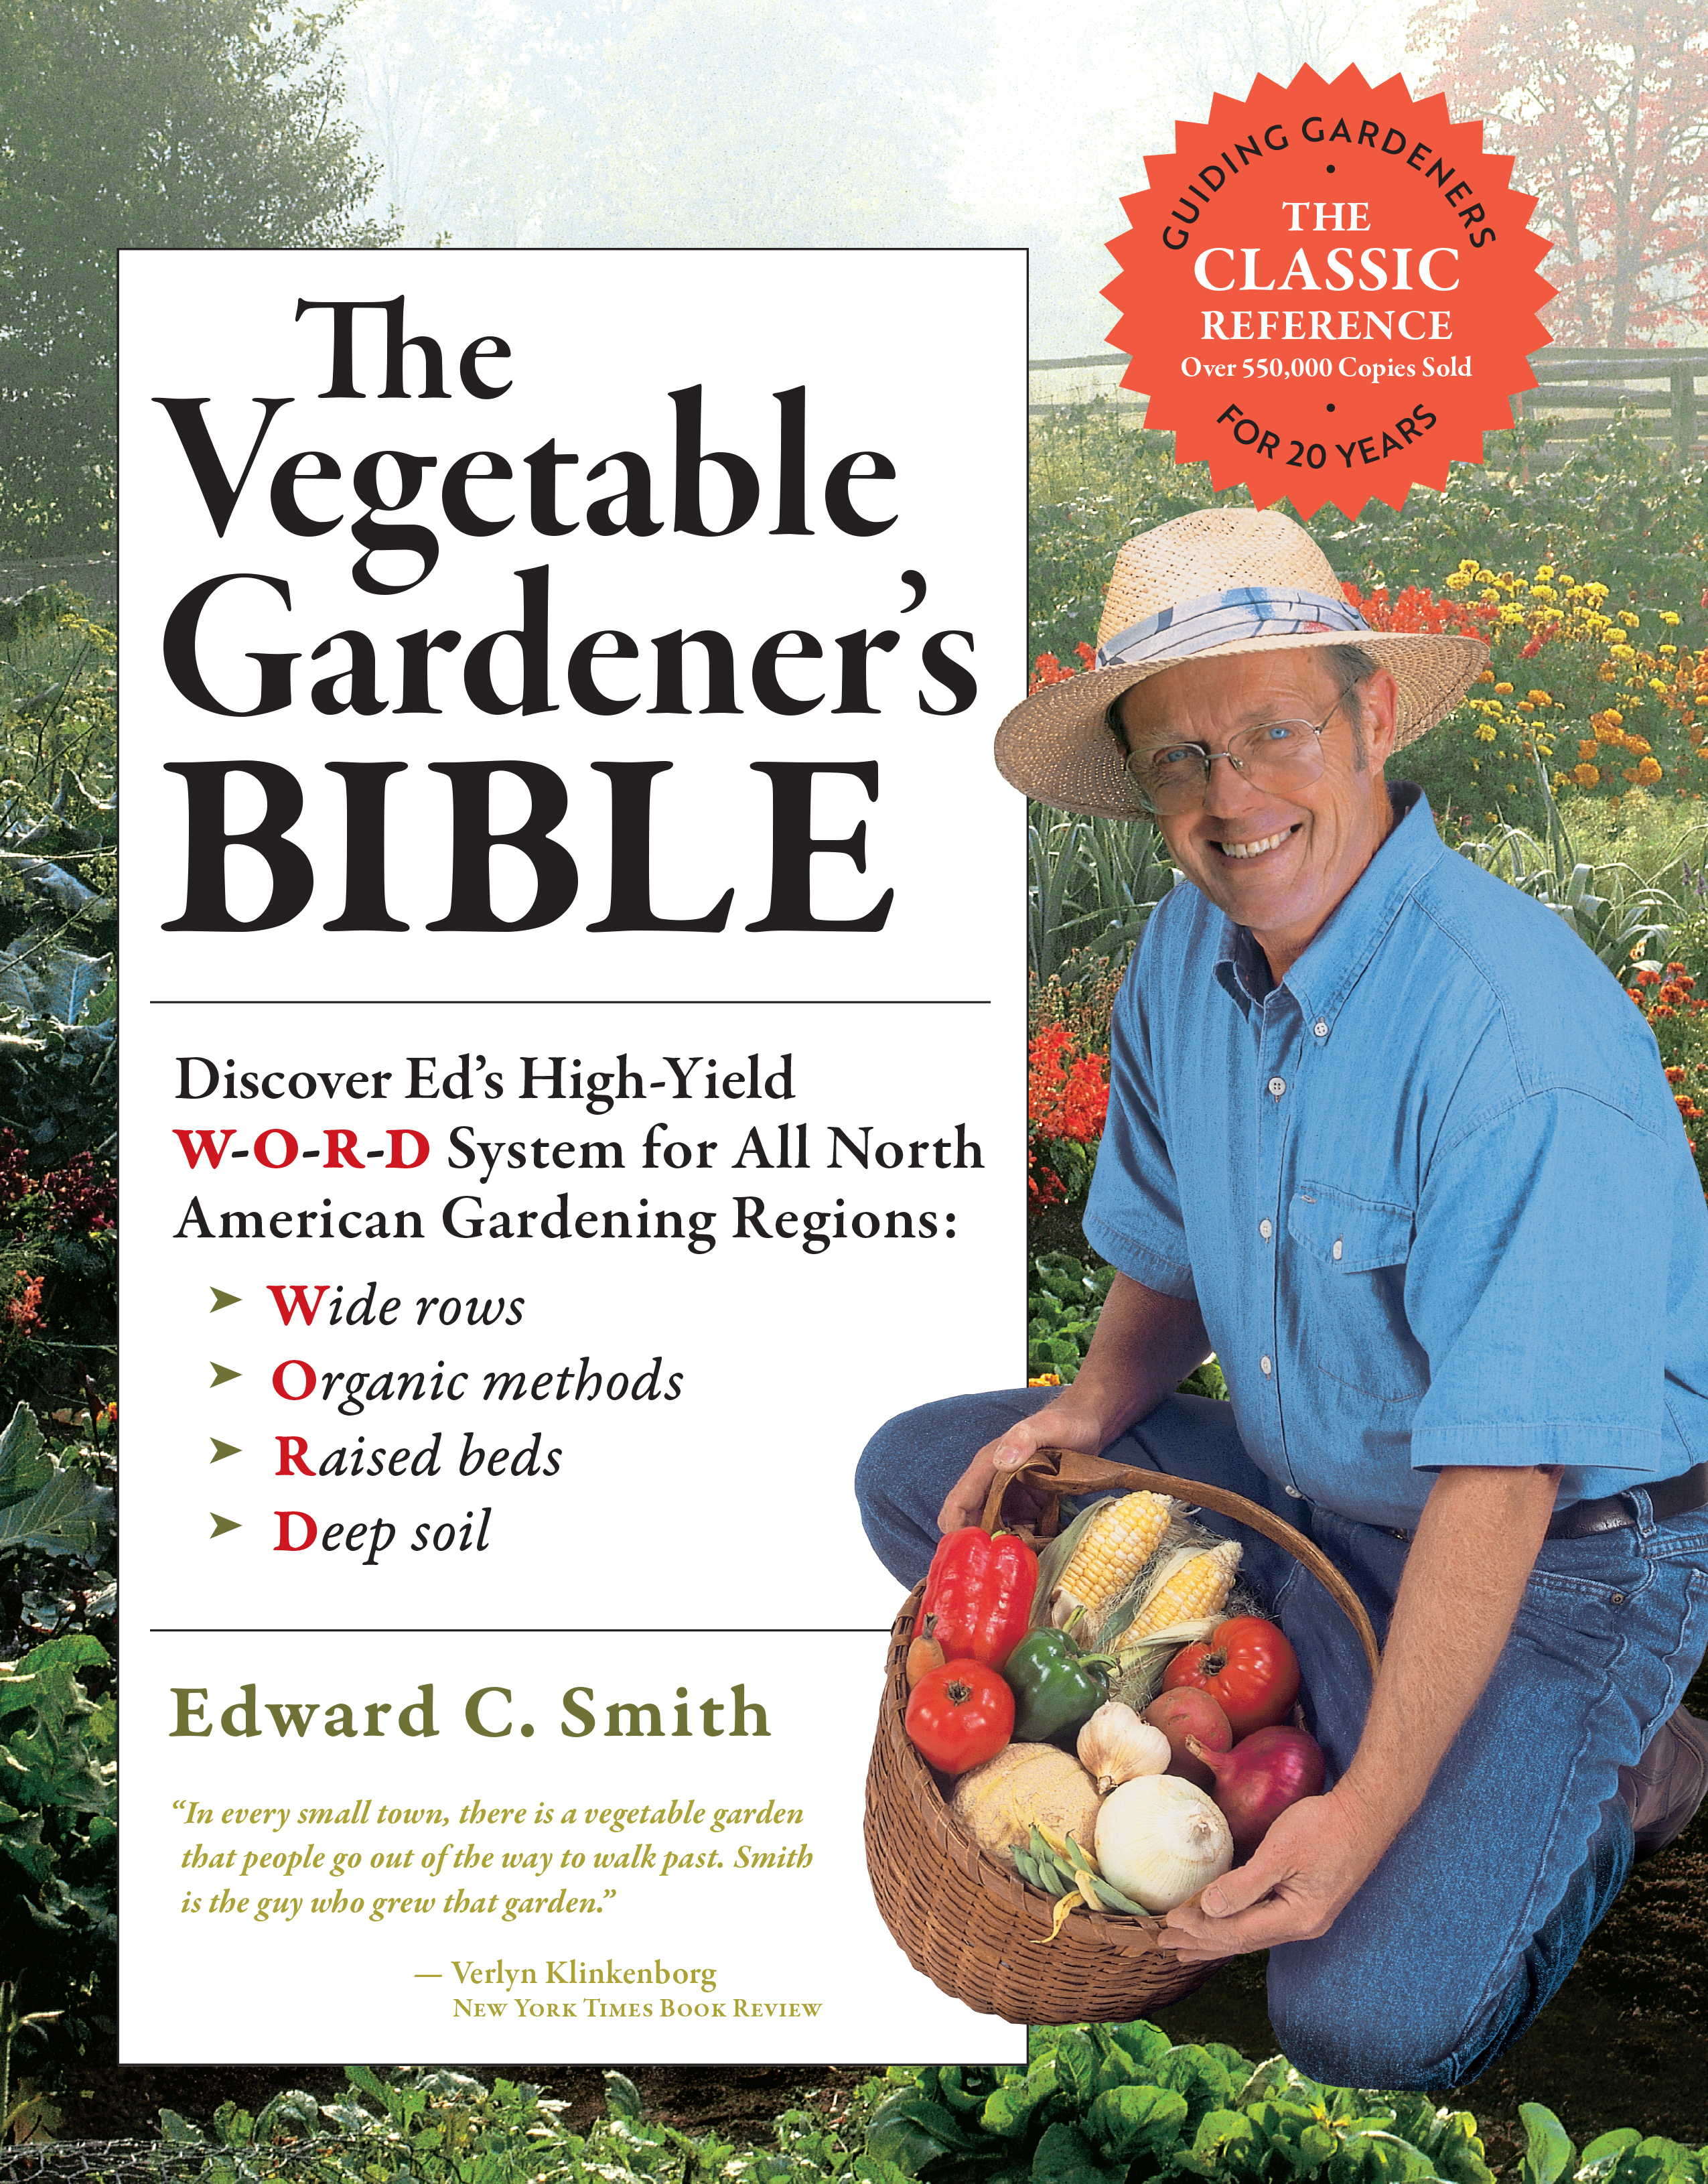 The Vegetable Gardener's Bible, 2nd Edition Discover Ed's High-Yield W-O-R-D System for All North American Gardening Regions: Wide rows, Organic methods, Raised beds, Deep soil